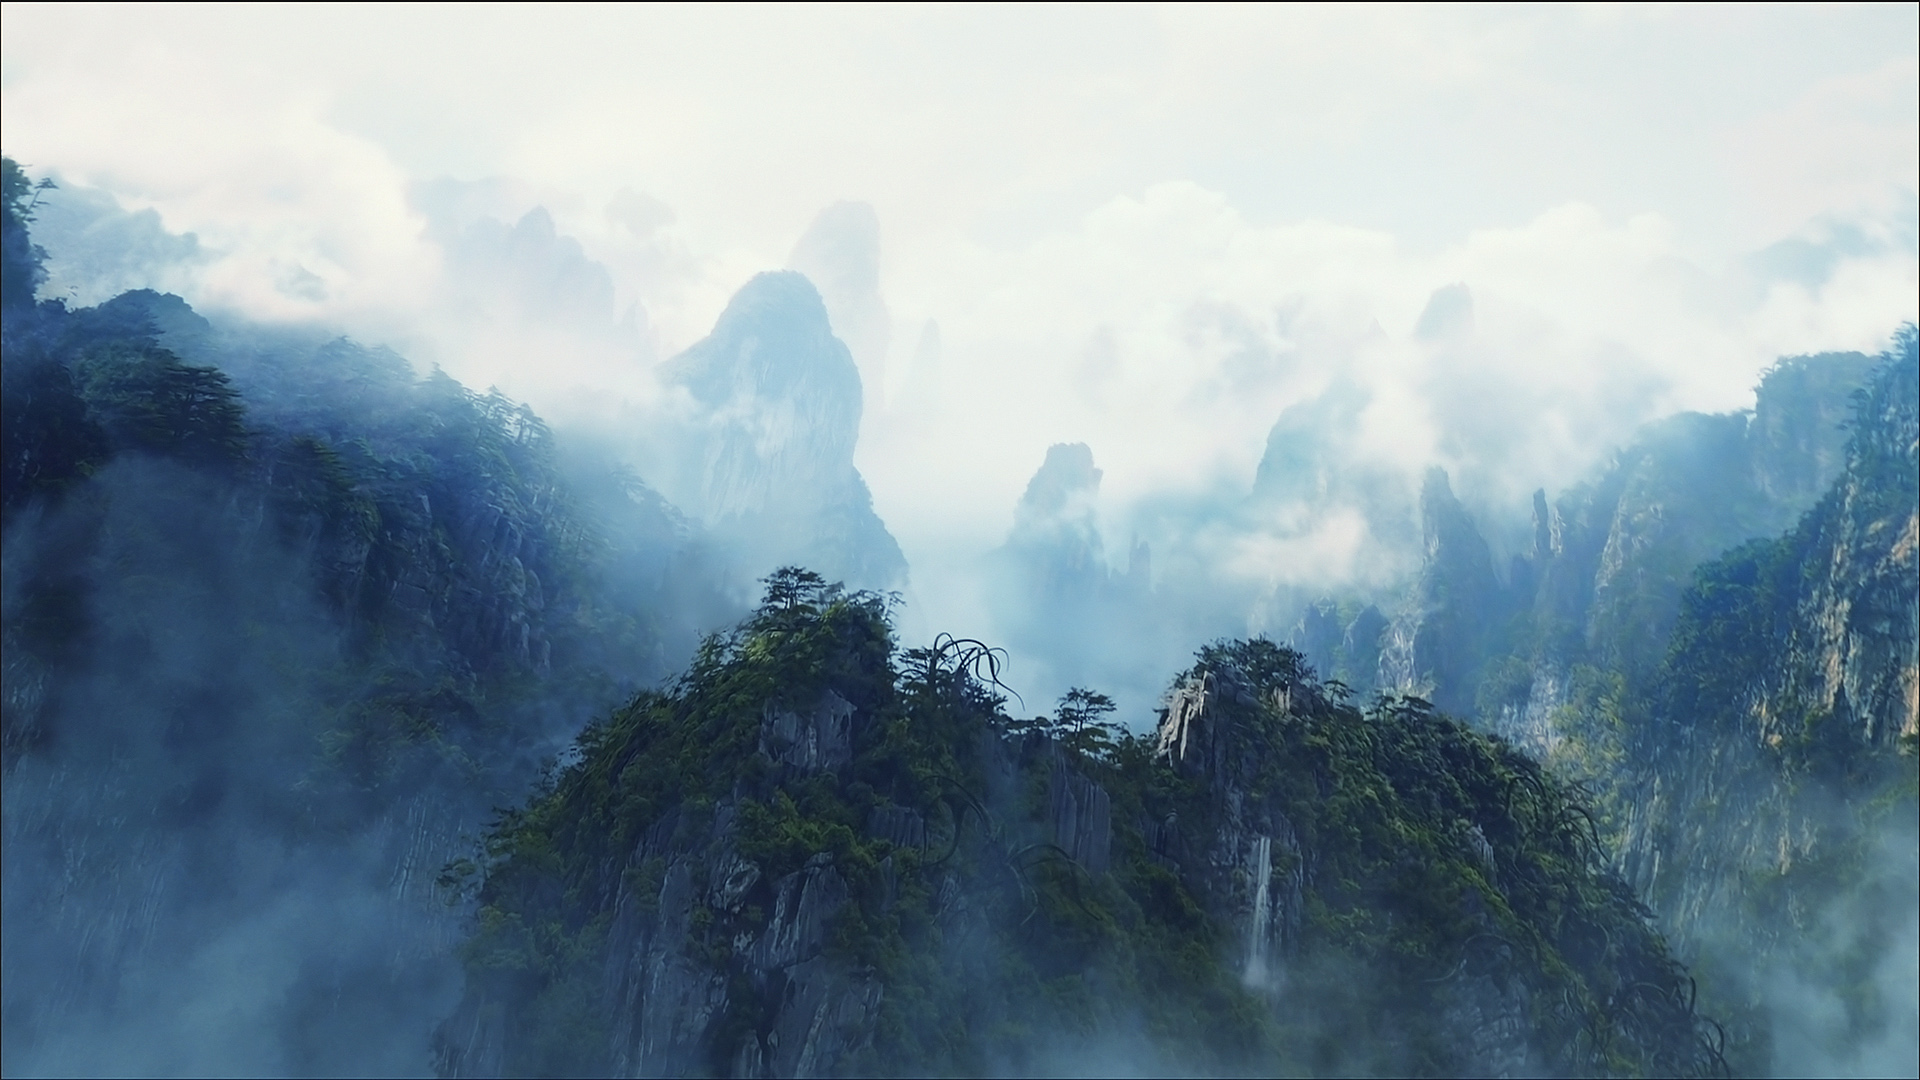 image - avatar hd wallpaper 12ihateyouare | avatar wiki